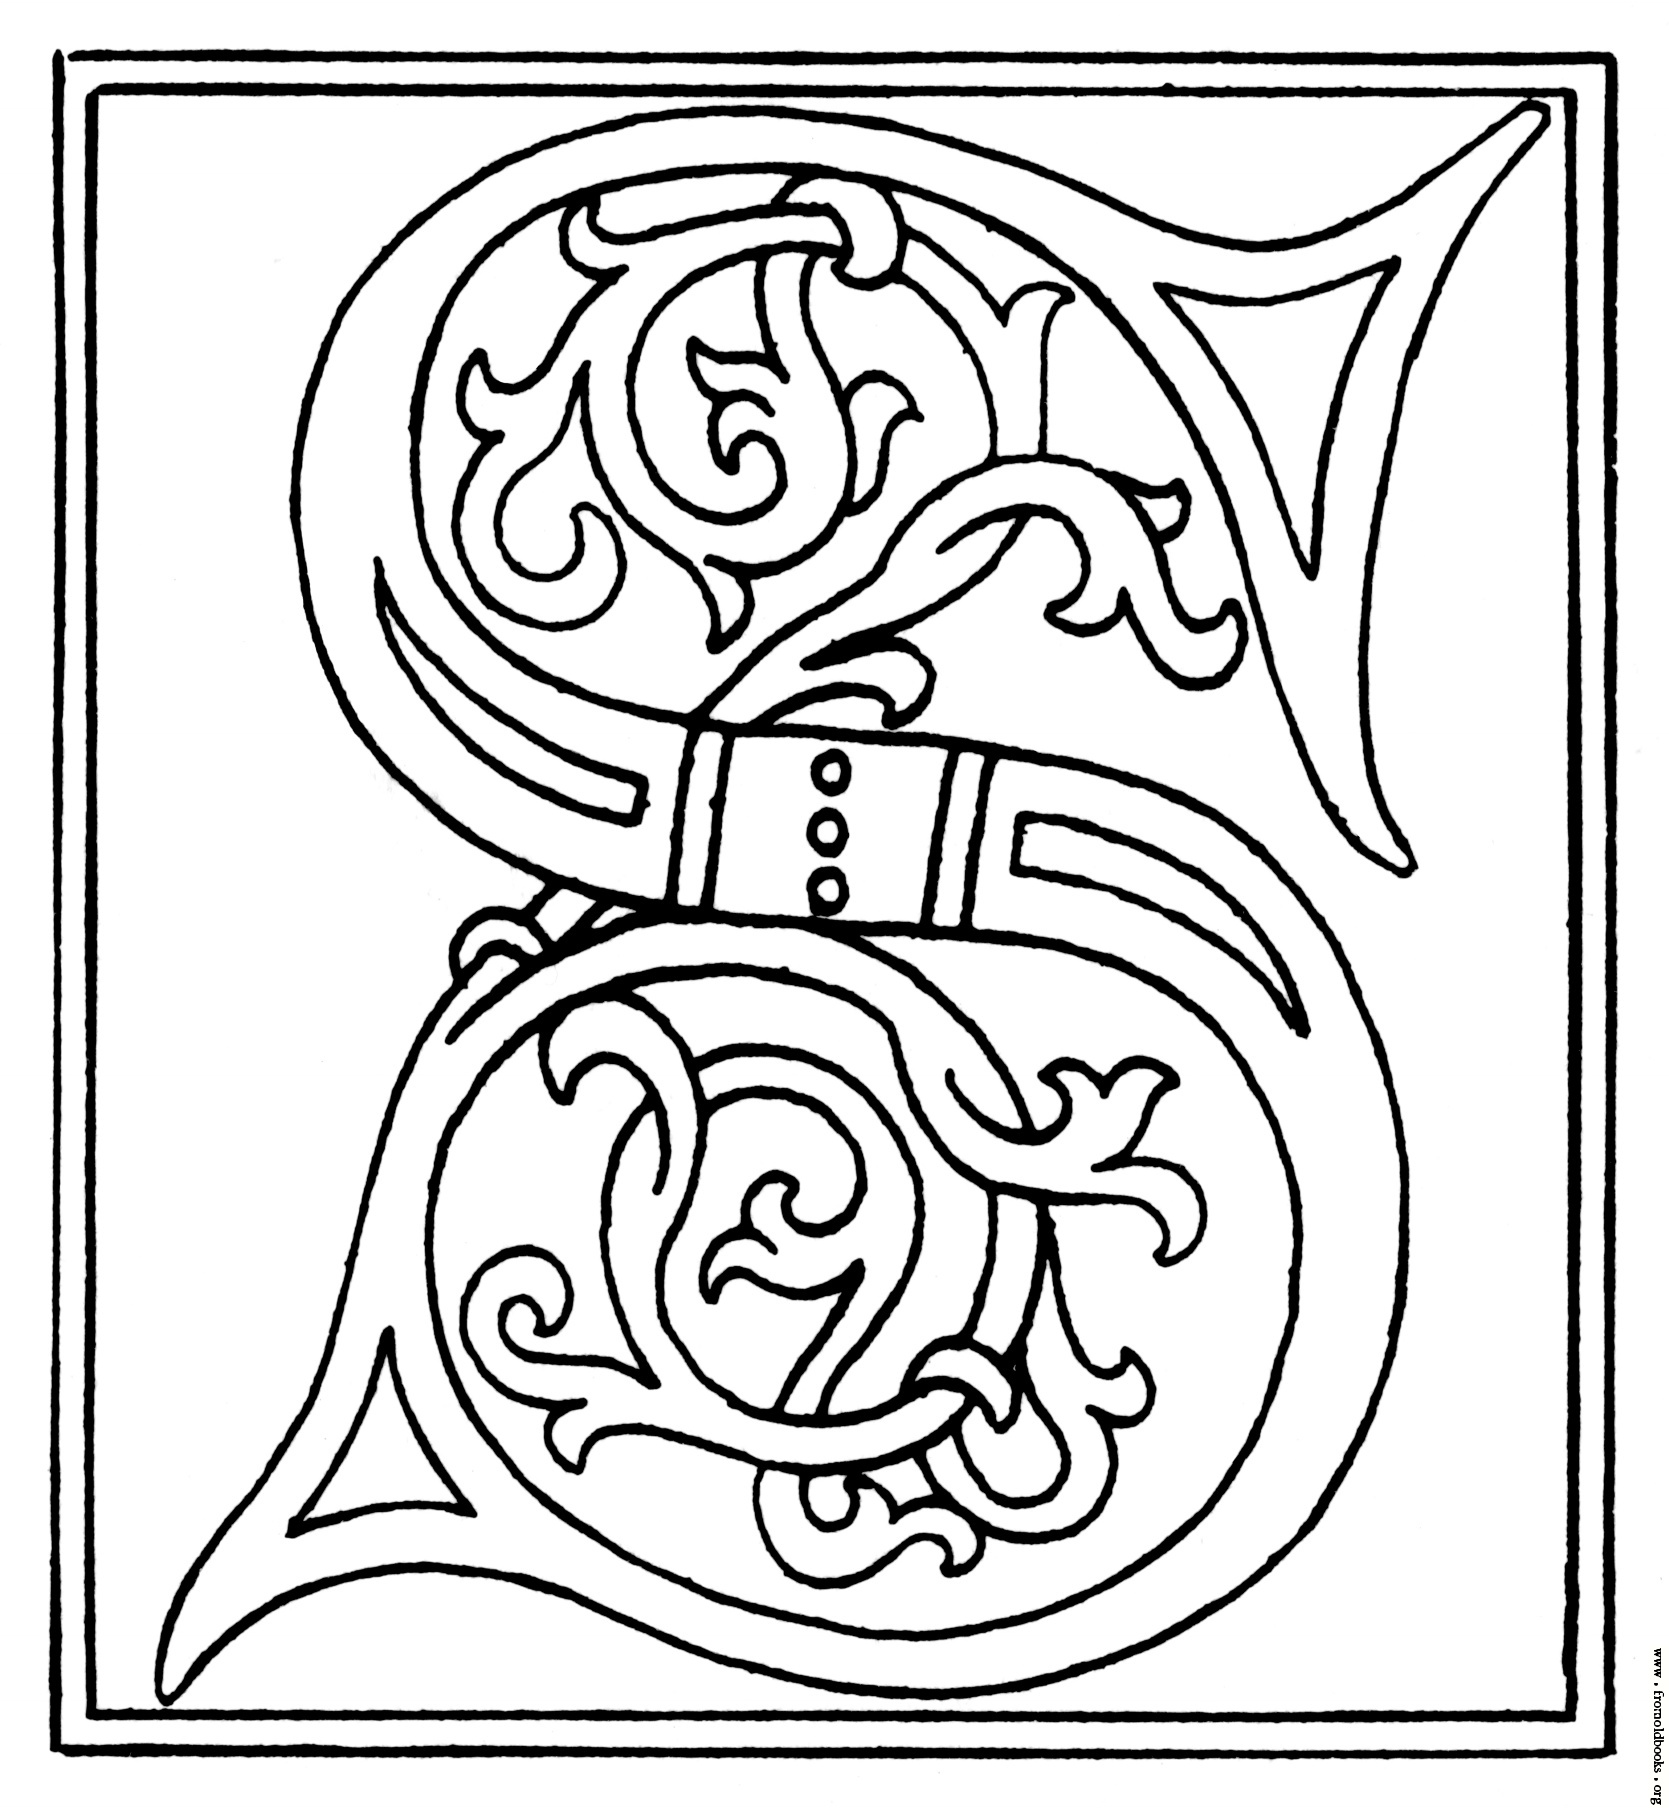 Celt clipart color Initial Calligraphy Printable S from